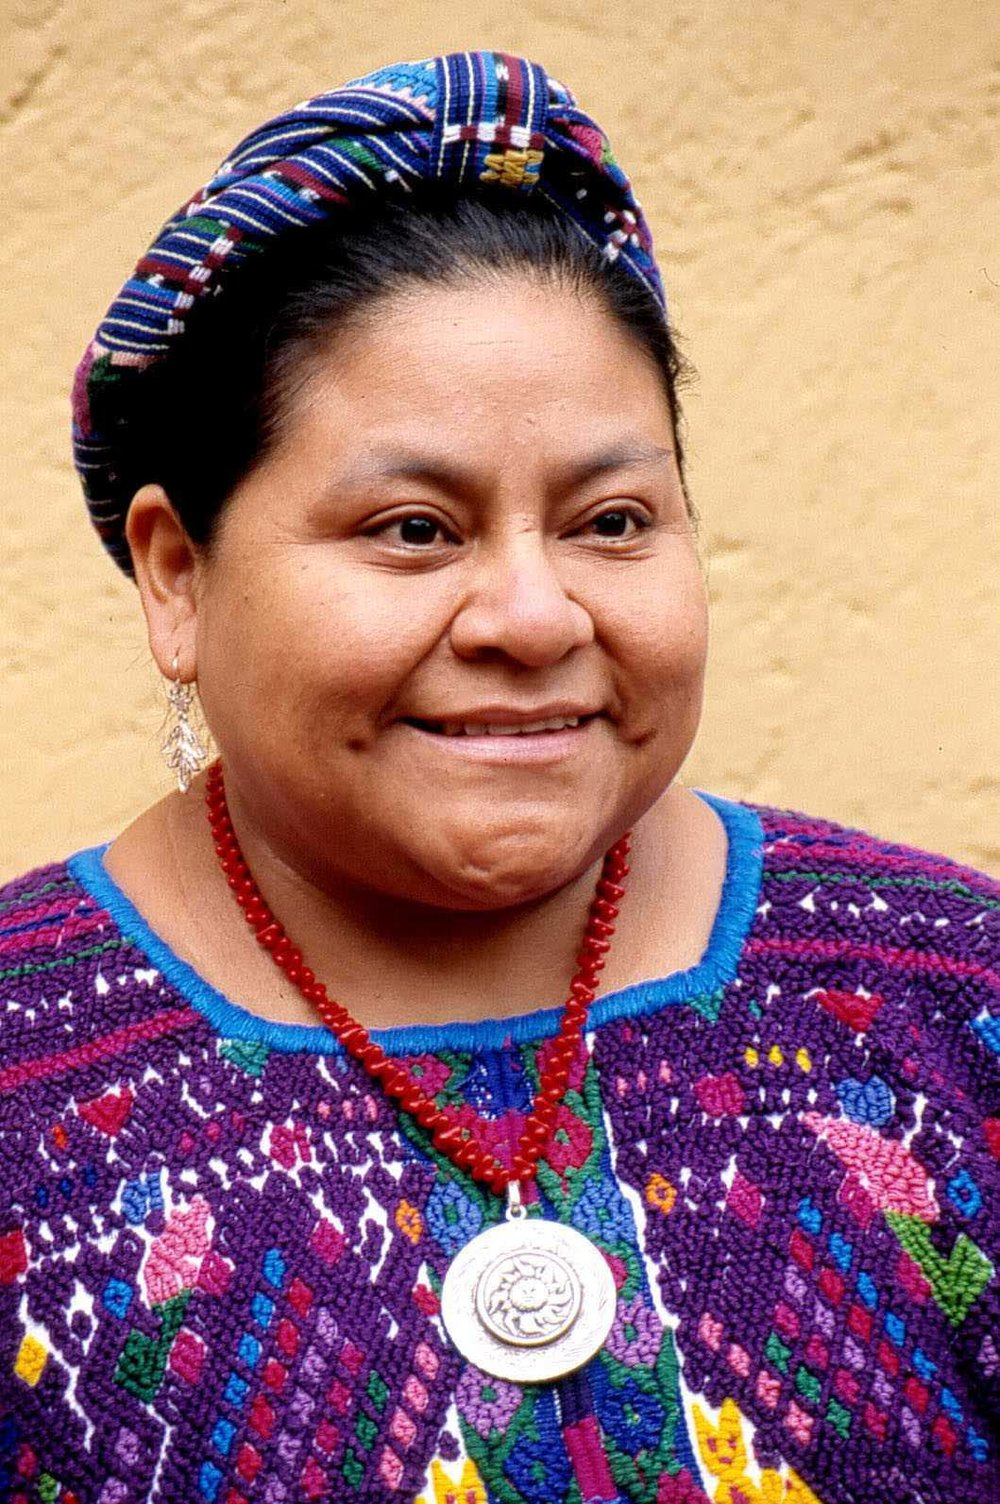 Rigoberta Menchú - Guatemalan indigenous rights and women's rights activist, Nobel Peace Prize recipient